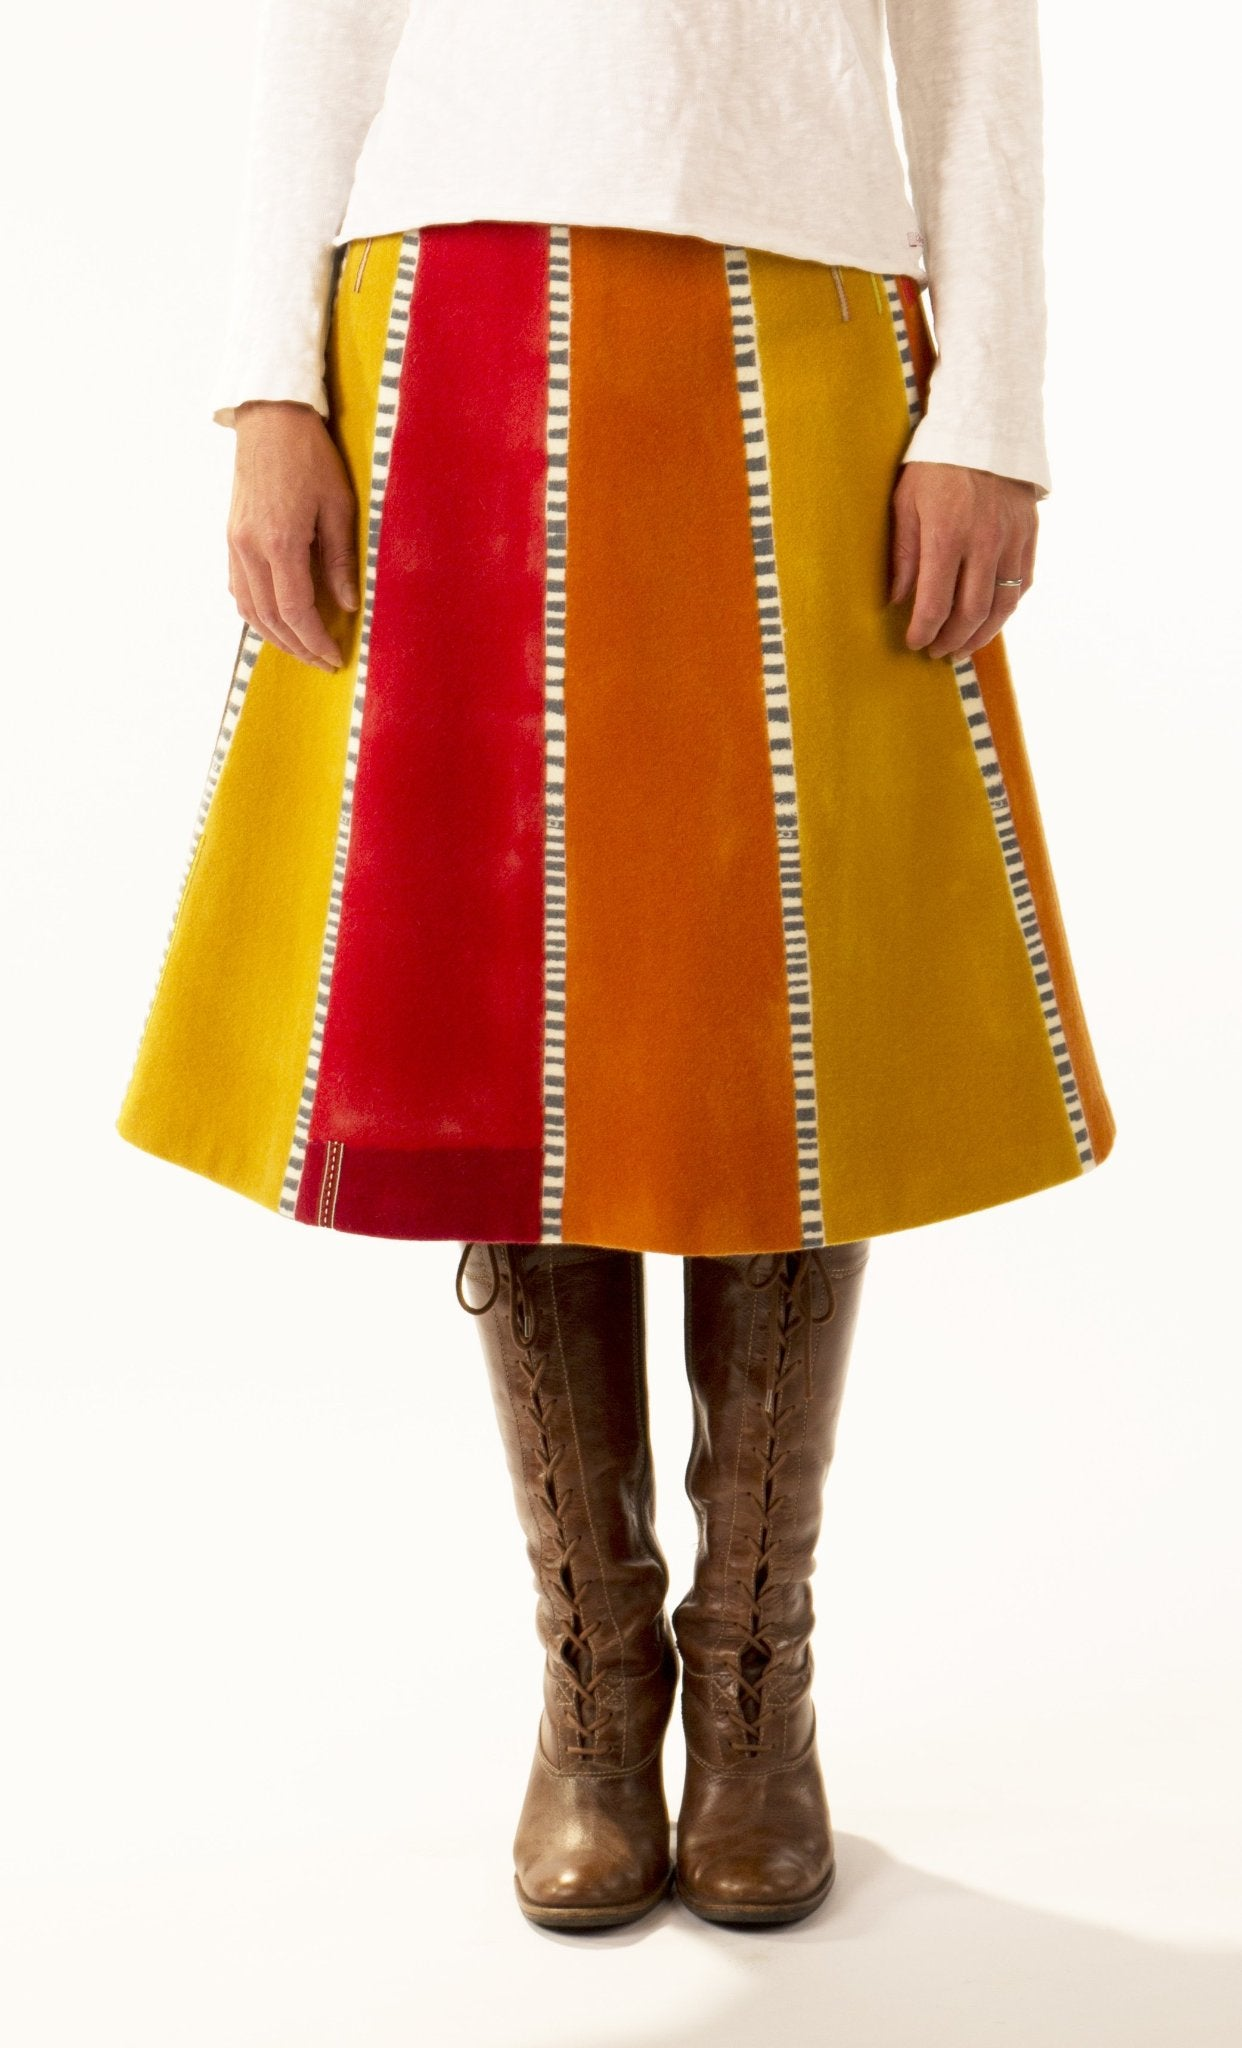 Jane keith Designs hand printed and painted wool skirt 'Linear Stripes'